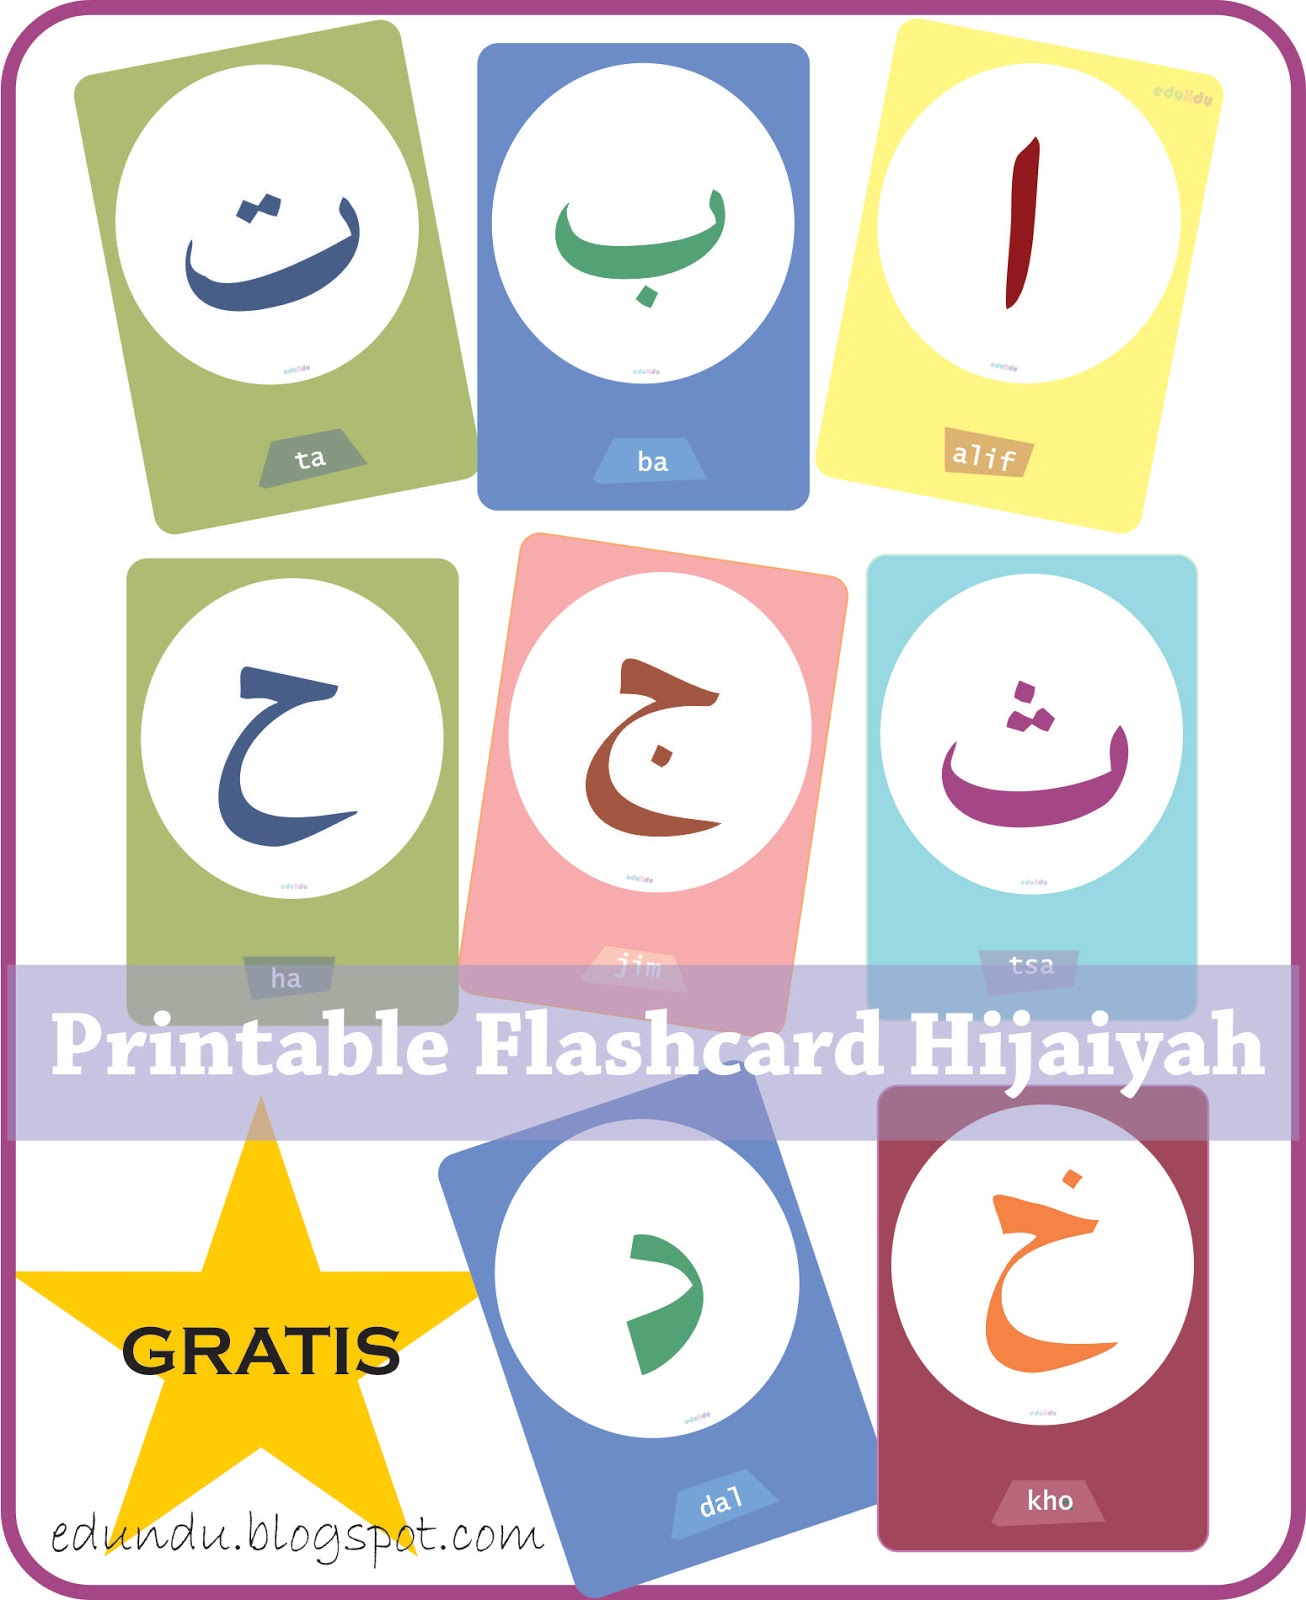 Gratis Printable Flashcard Hijaiyah